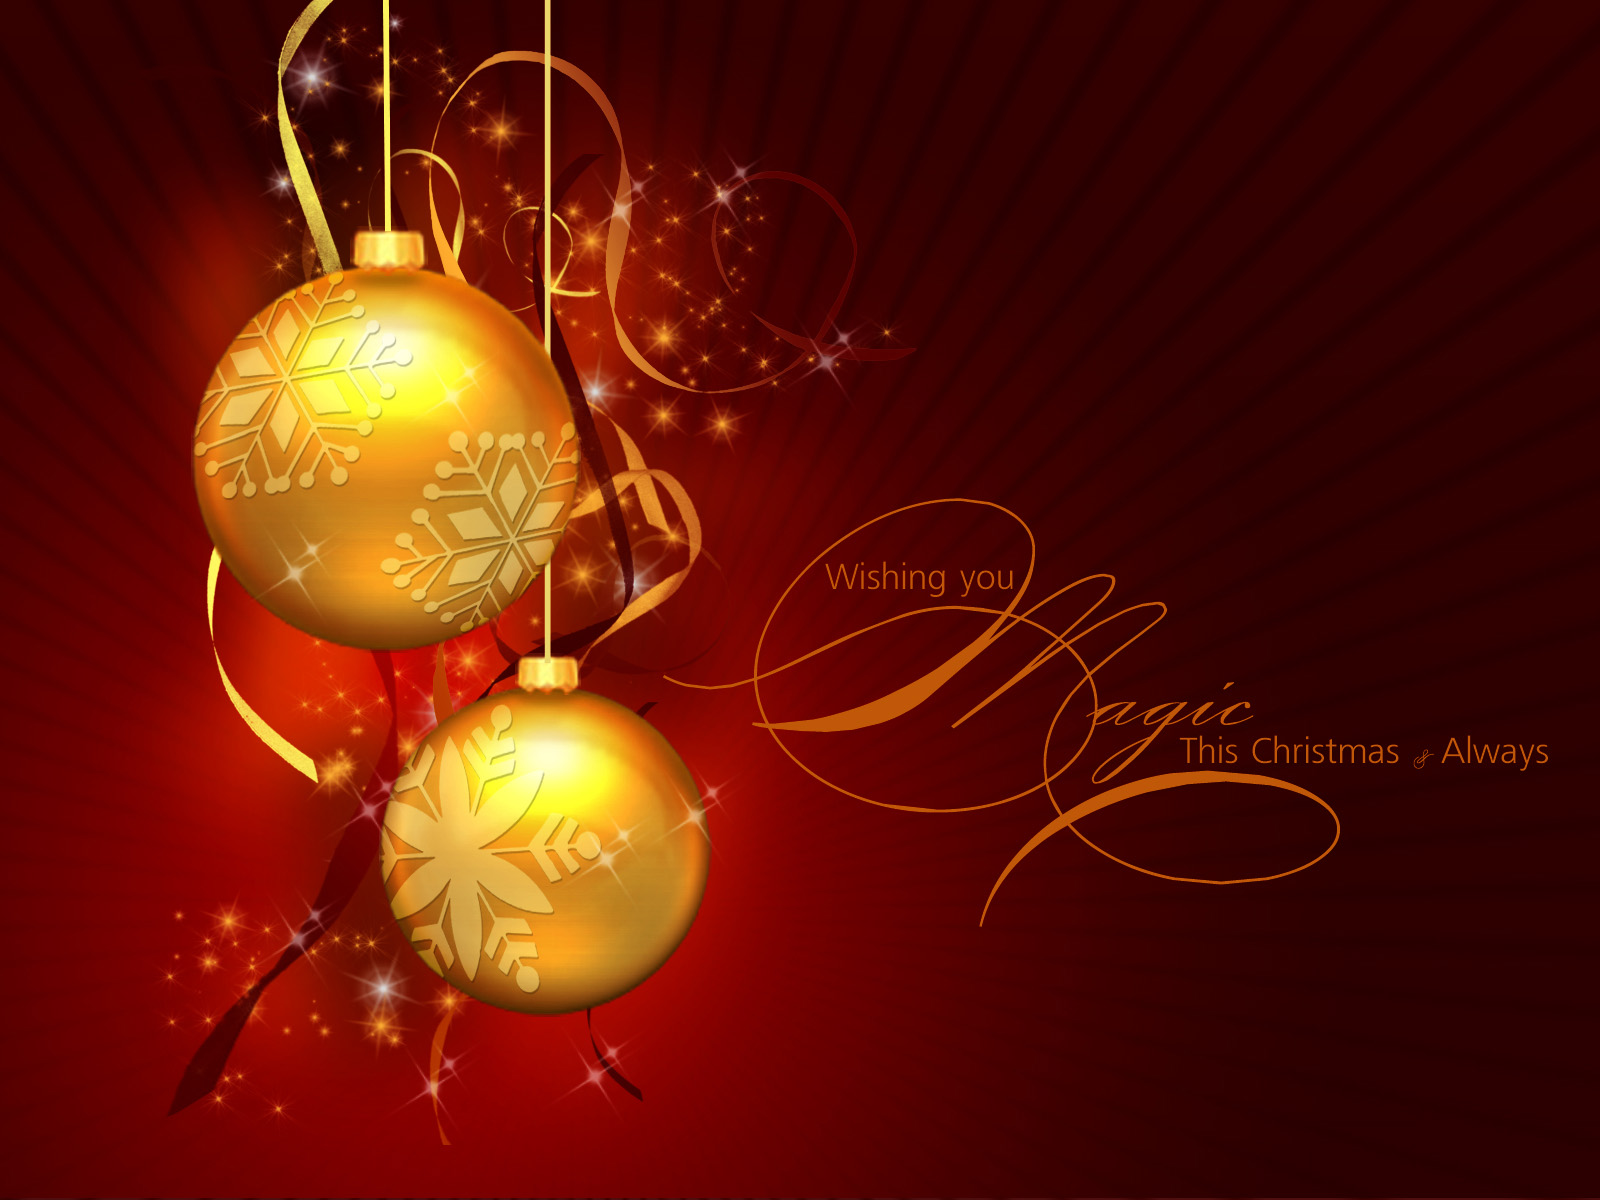 Free Christmas Wallpapers Downloads Best Hd Desktop: High Definition Photo And Wallpapers: Free Christmas